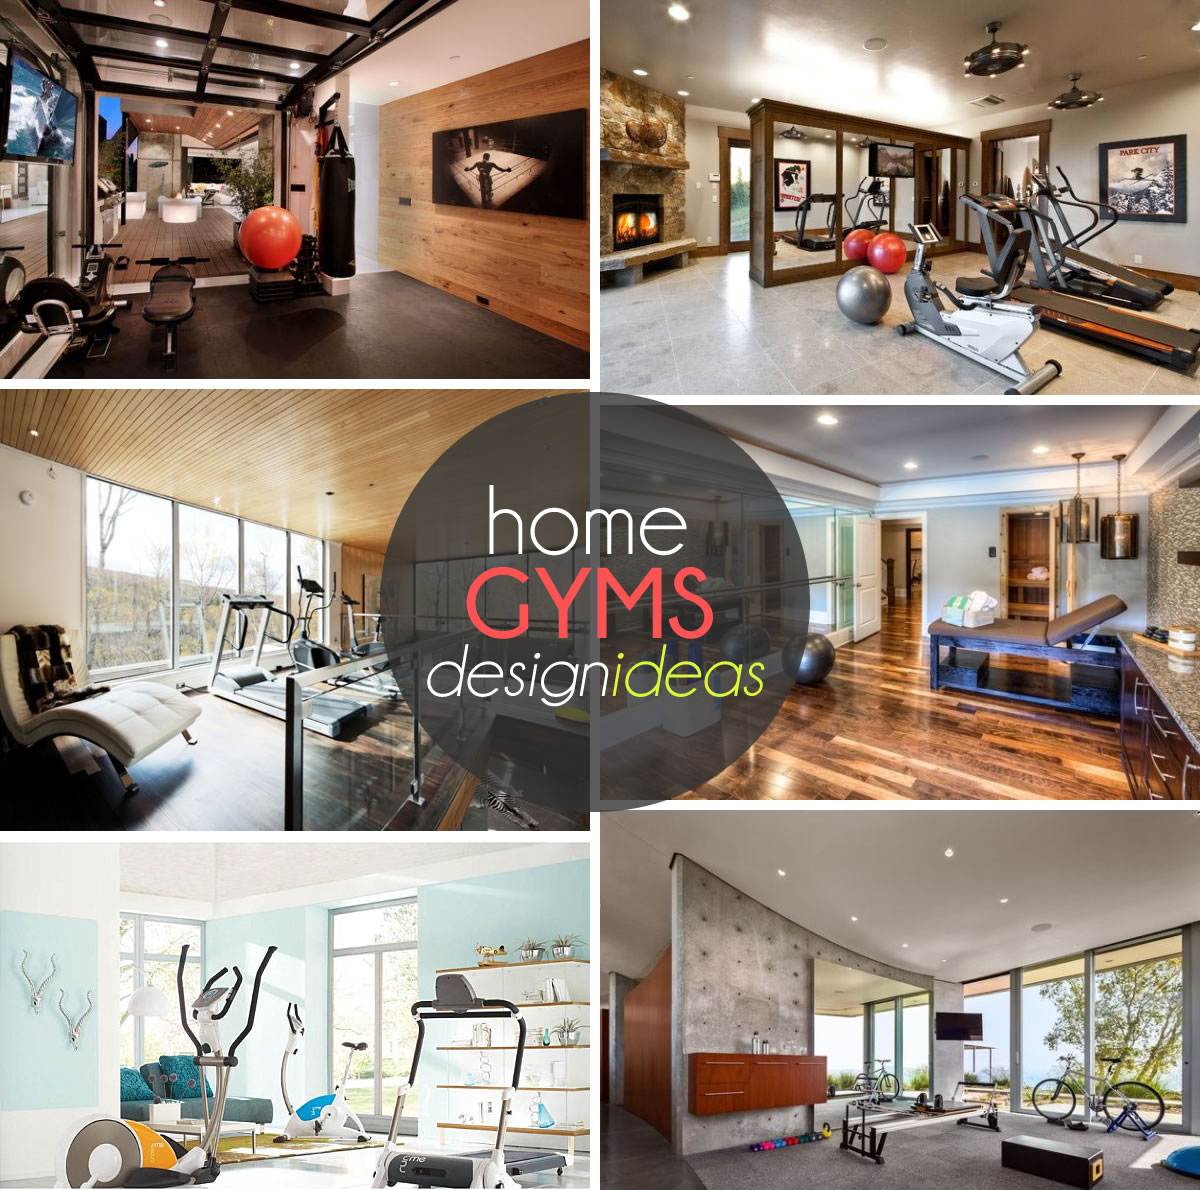 Home Gym Design: 70+ Home Gym Ideas And Gym Rooms To Empower Your Workouts